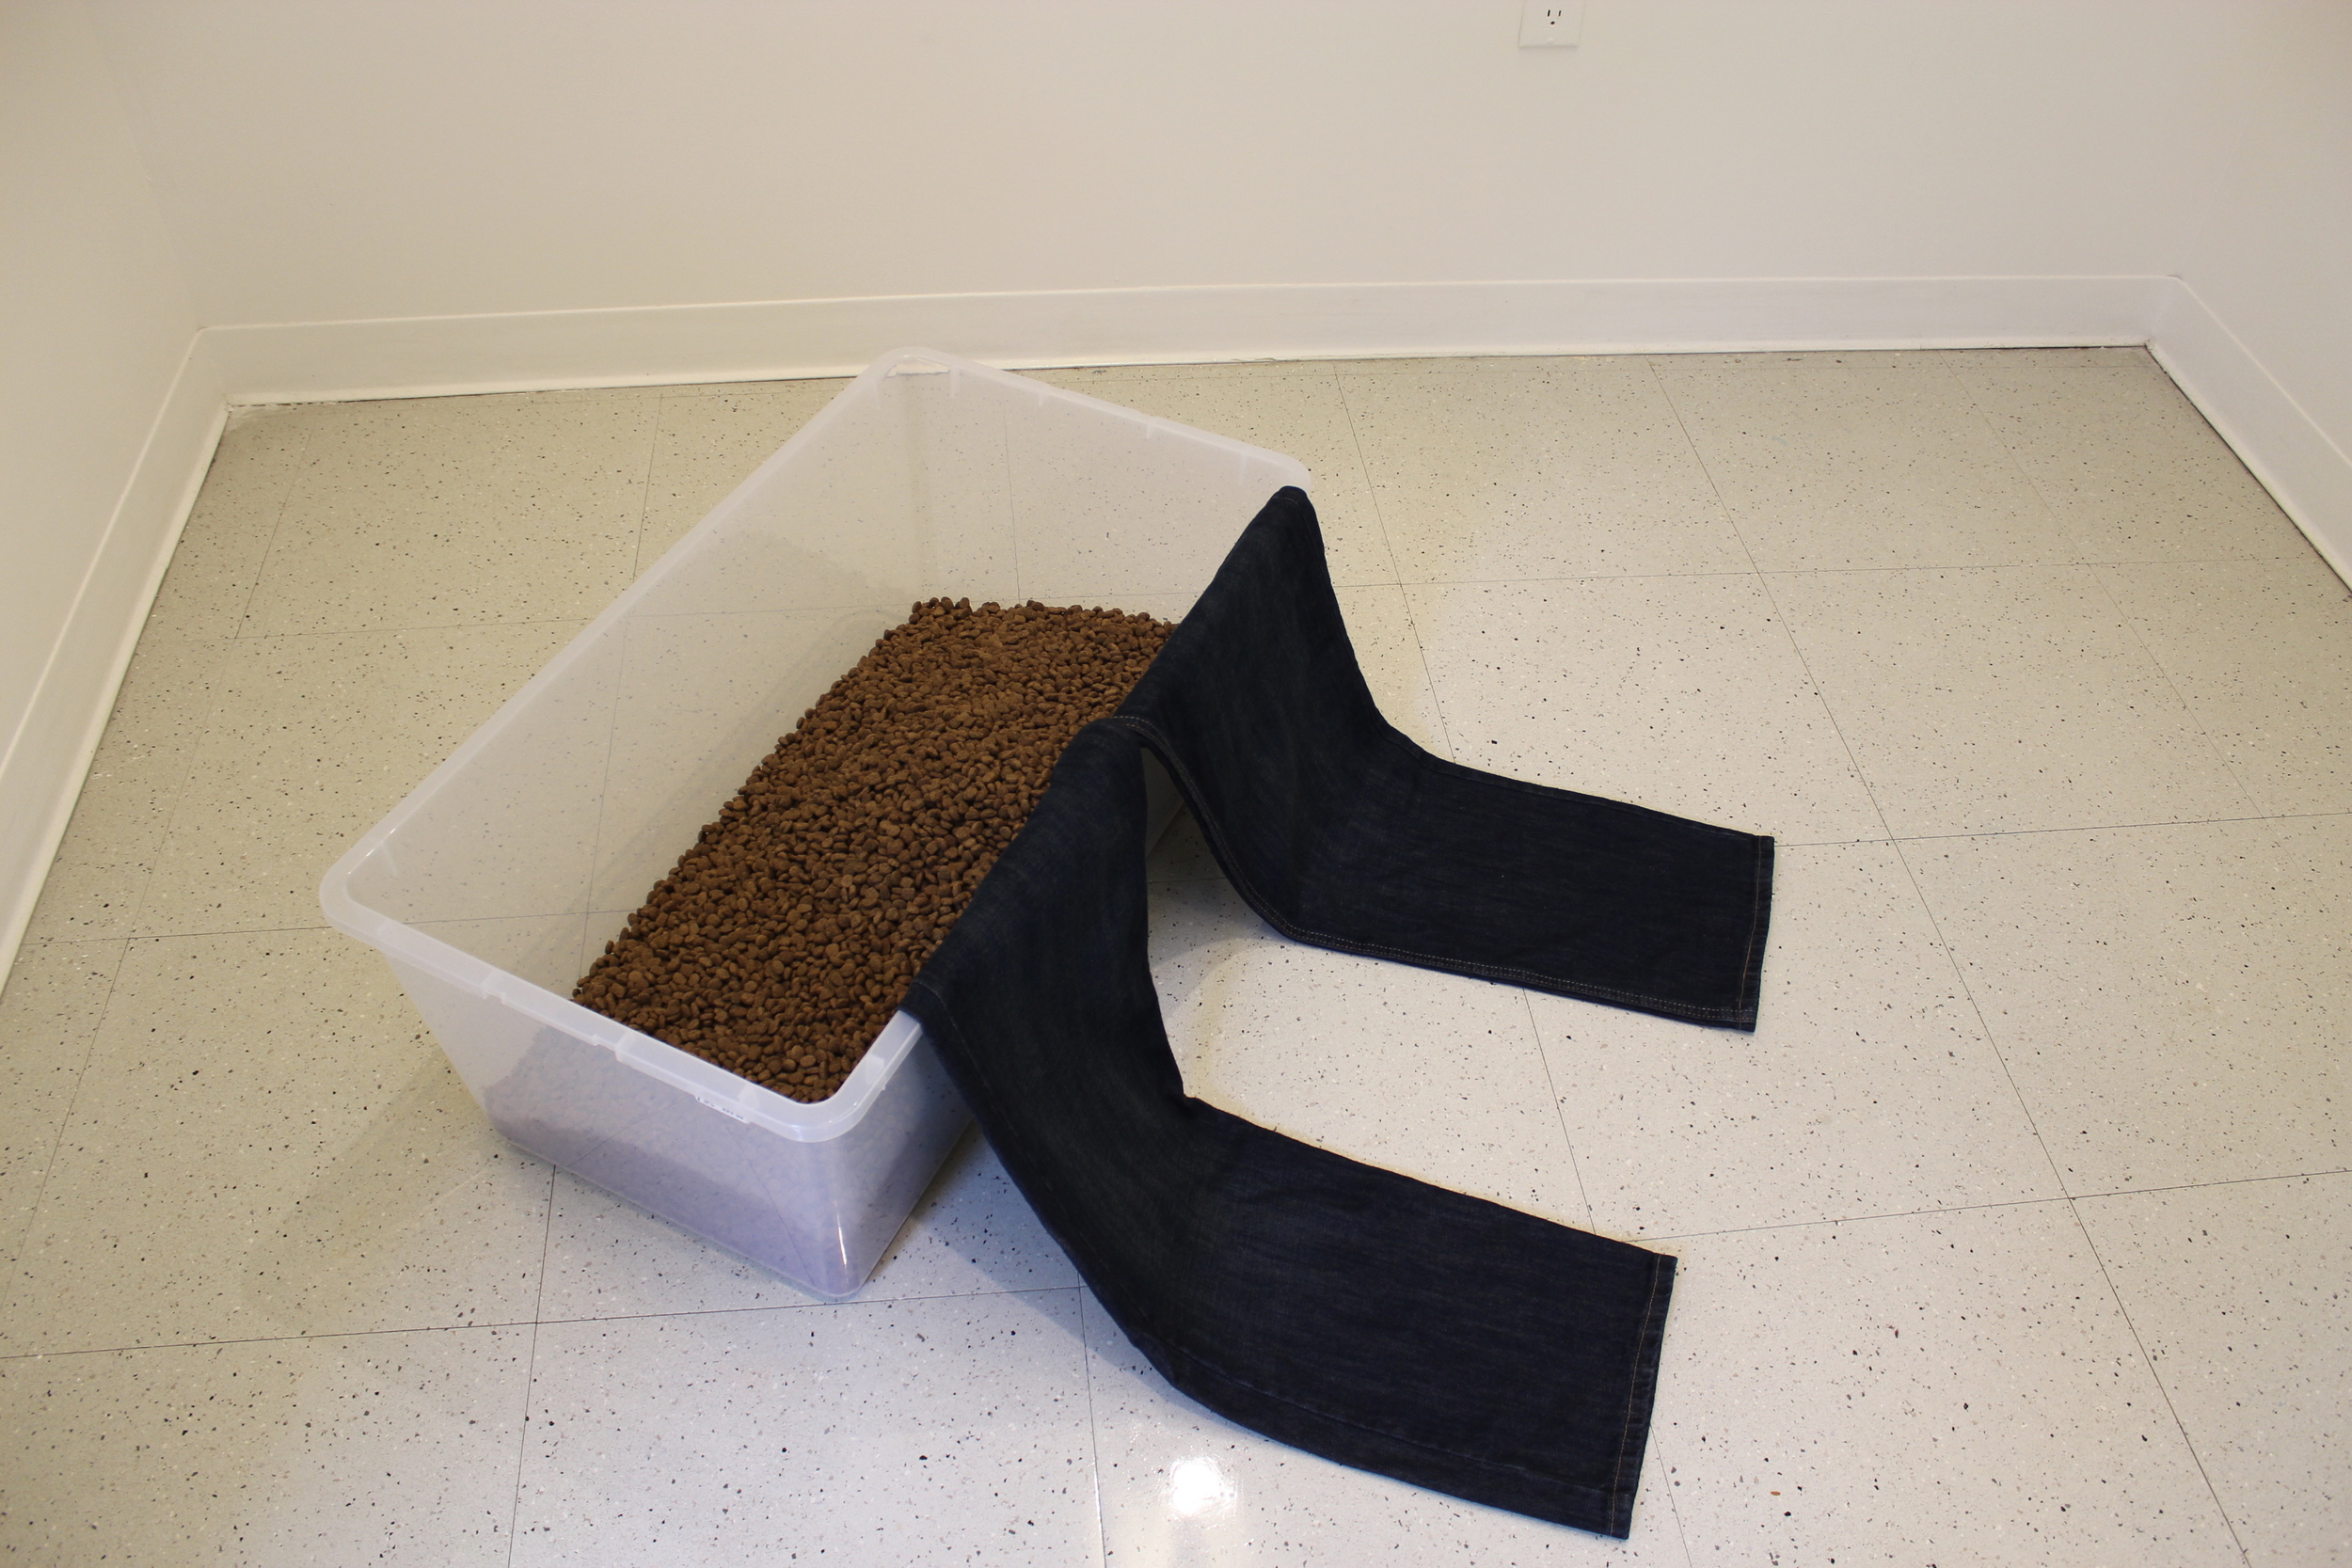 TAIL BETWEEN THE LEGS  Plastic Container, Dog Food, Jeans. Dimensions Variable 2014